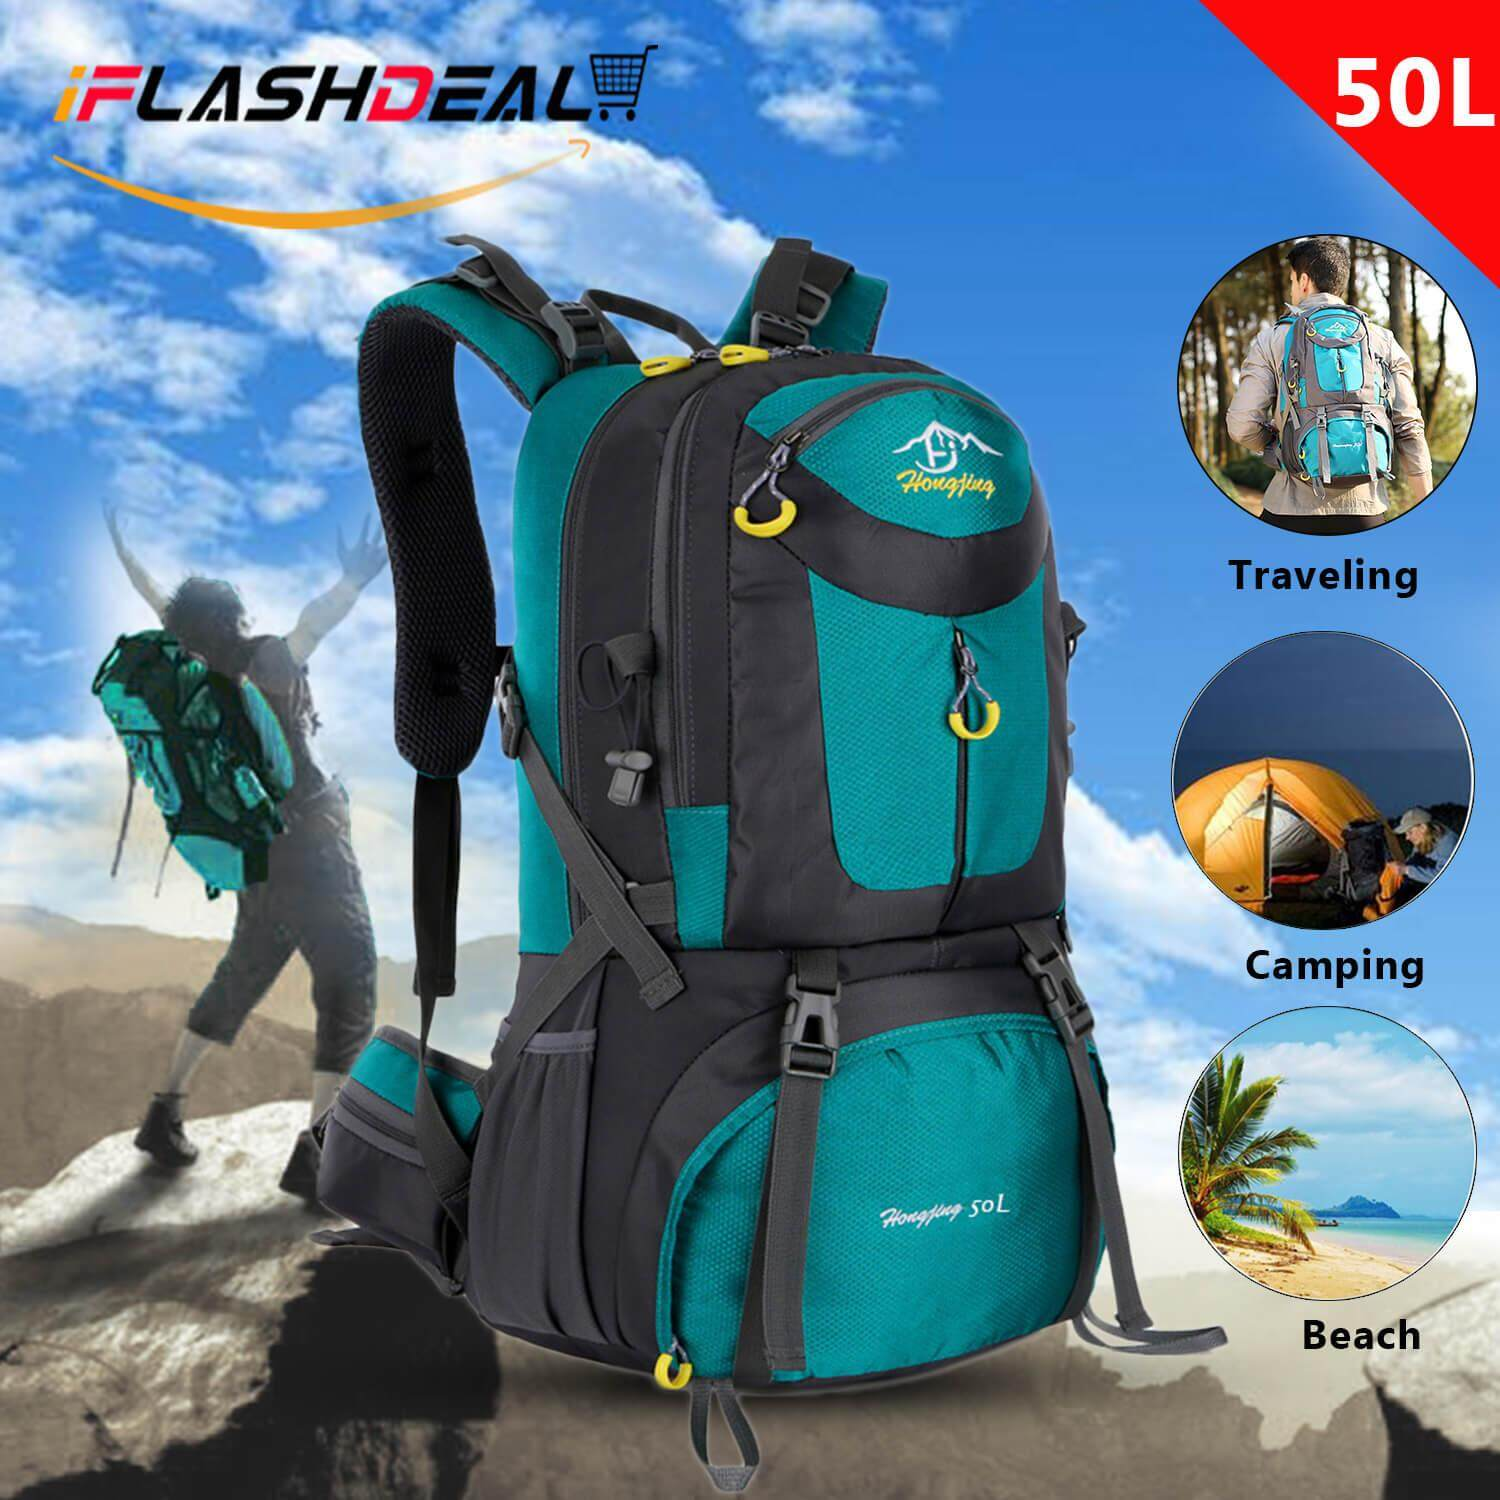 Iflashdeal Outdoor Hiking Backpack Sport Camping Travel Shoulder Pack Bag Water Resistant Mountaineering Climbing Backpacking Trekking Bag 50l By Iflashdeal.